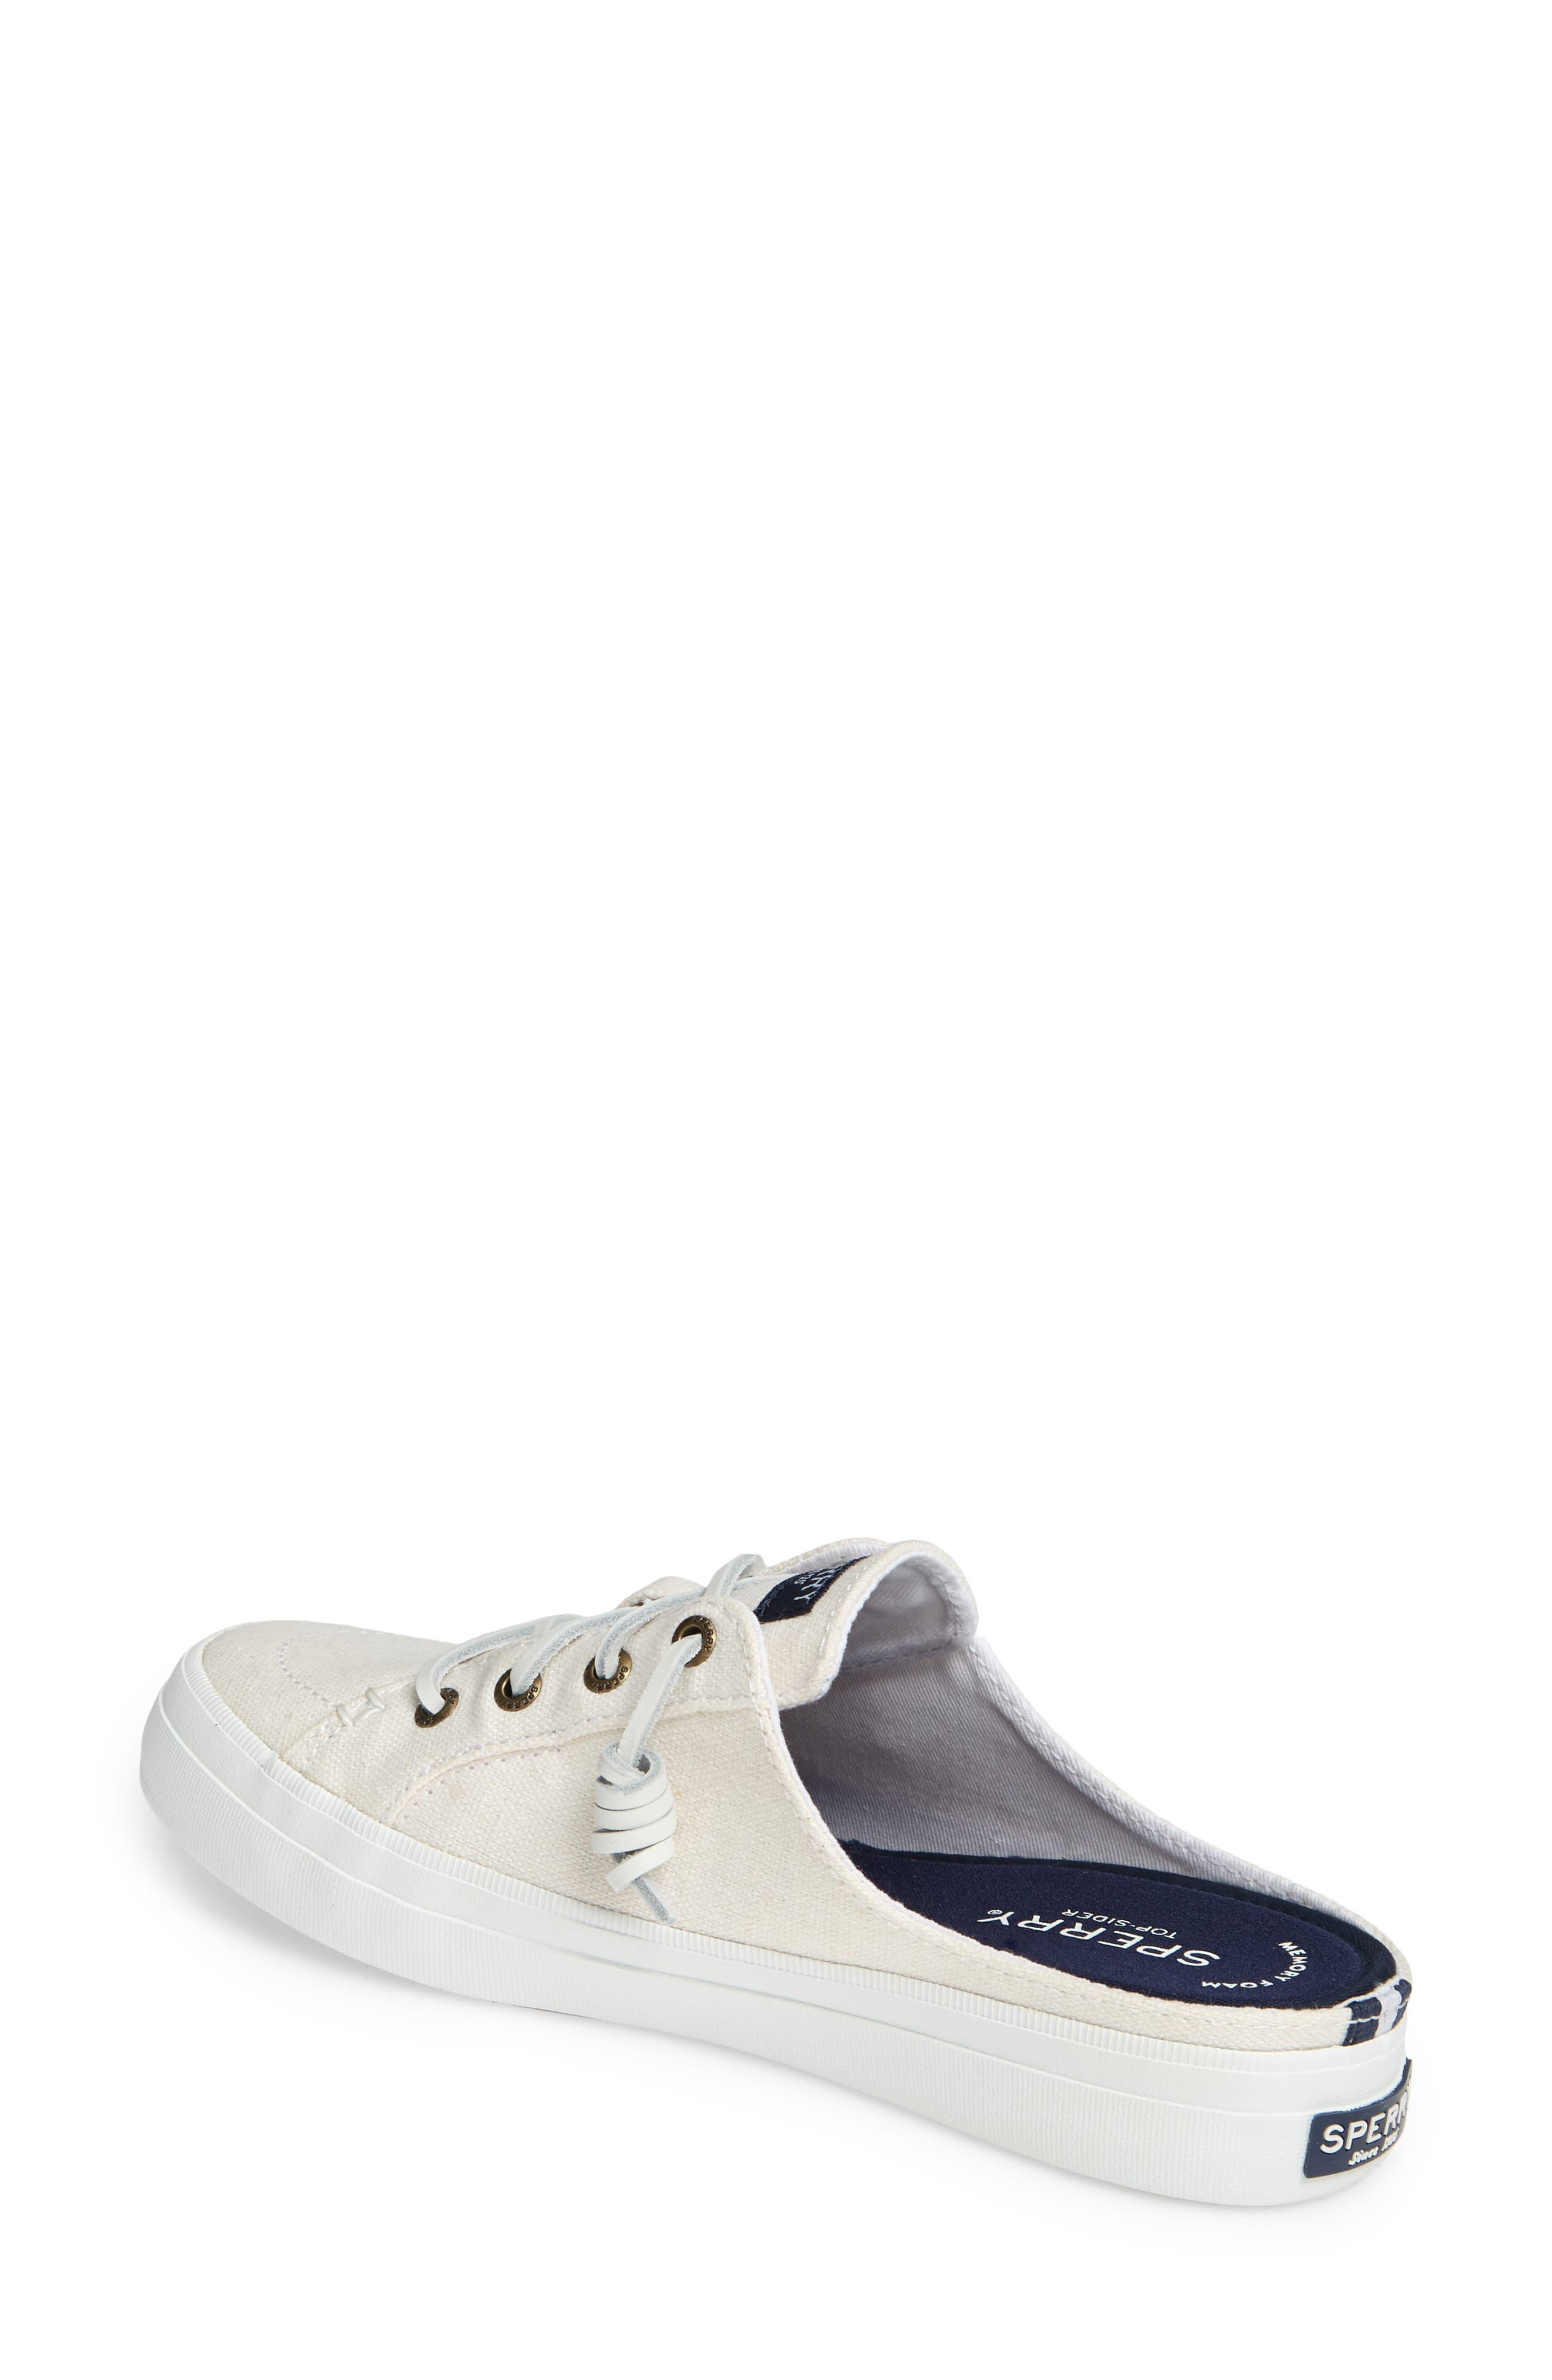 Sperry Top-Sider Leather Crest Vibe